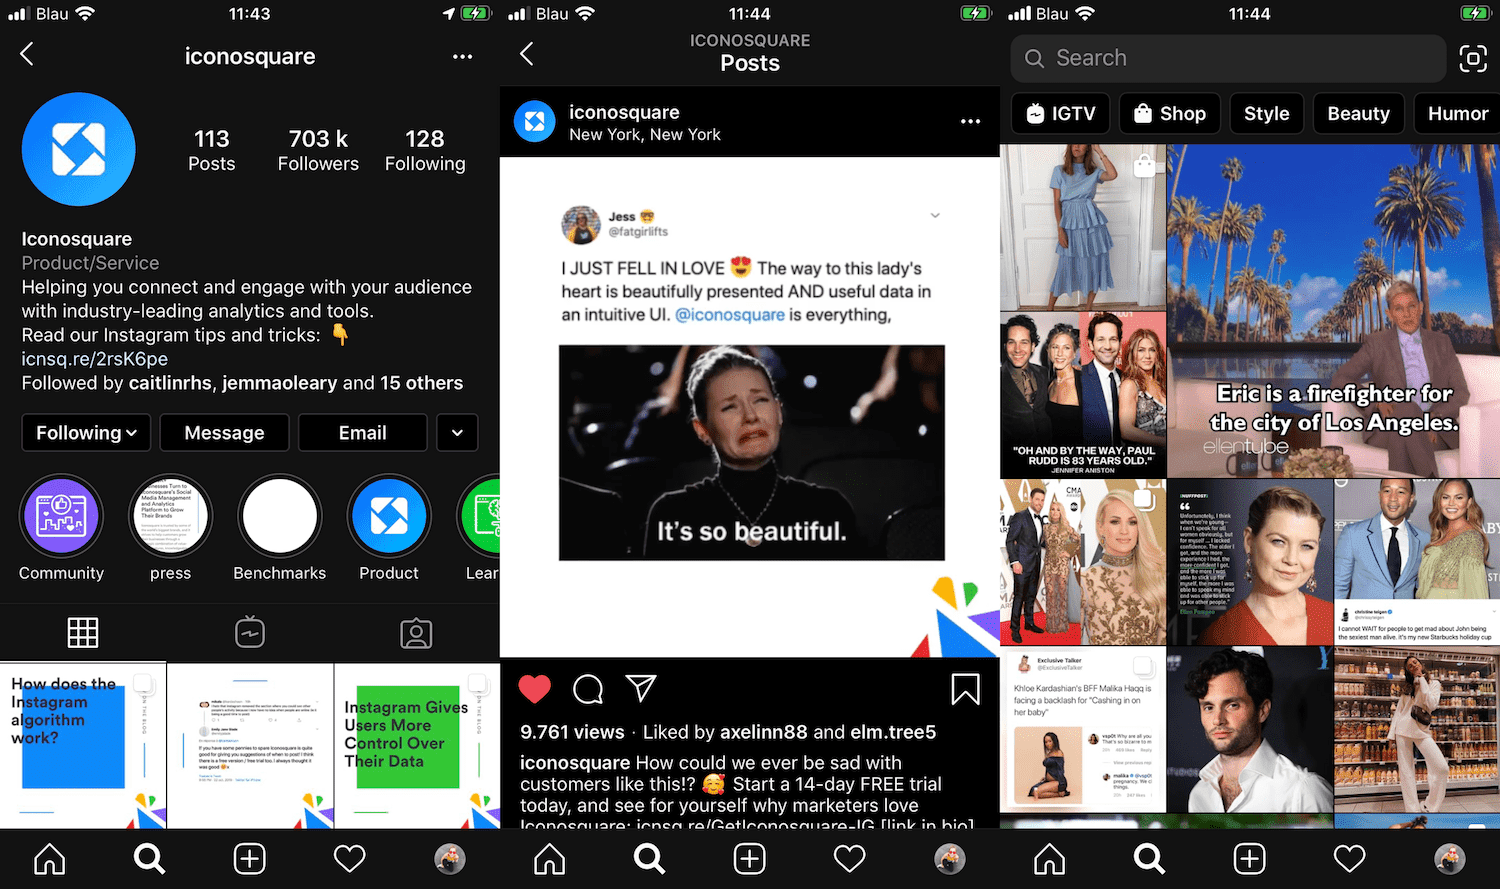 Instagram Dark Mode example from Iconosquare